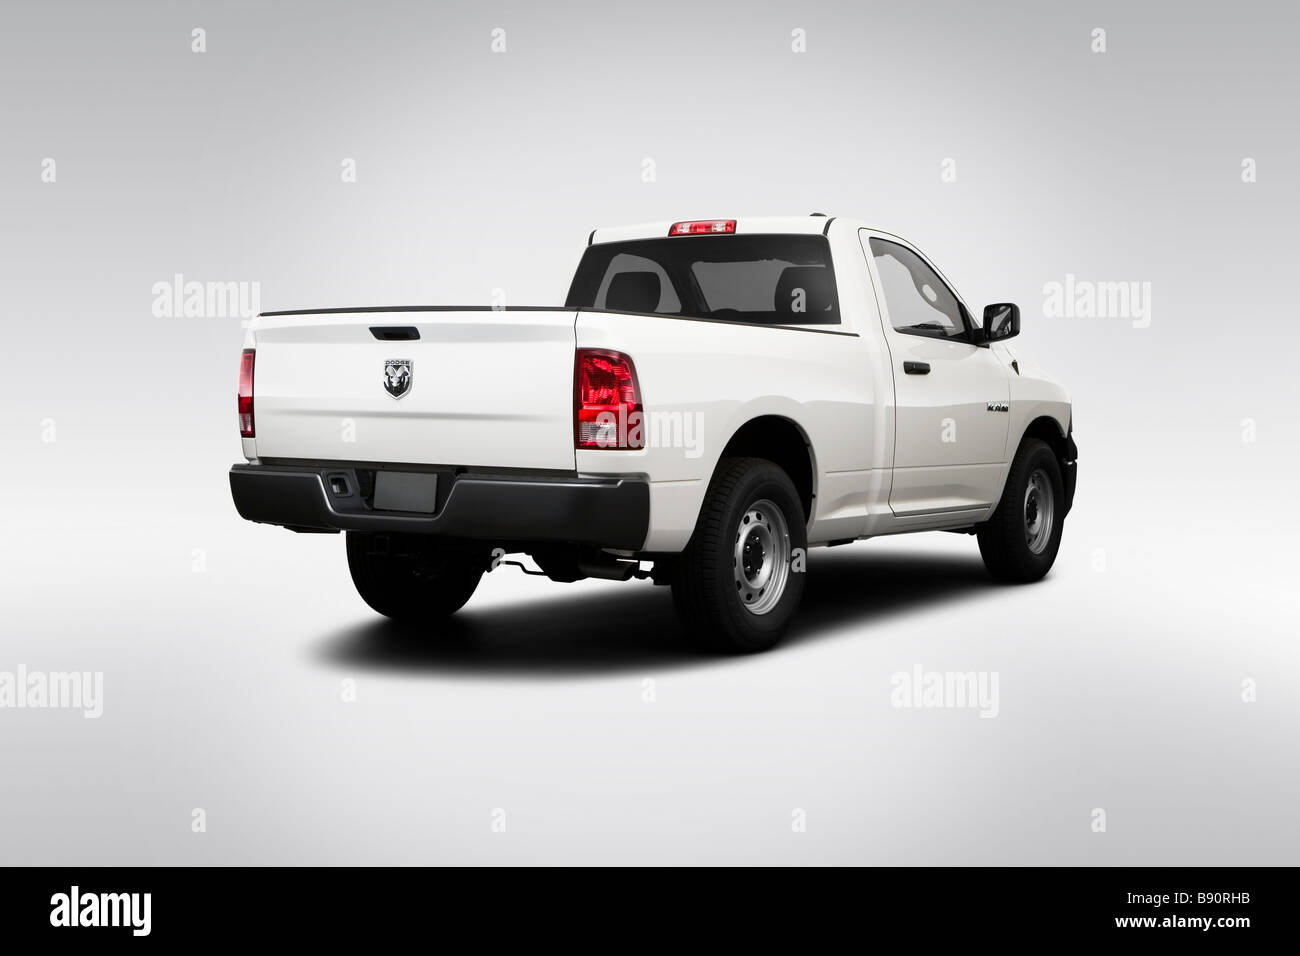 2009 Dodge Ram 1500 ST in White - Rear angle view - Stock Image